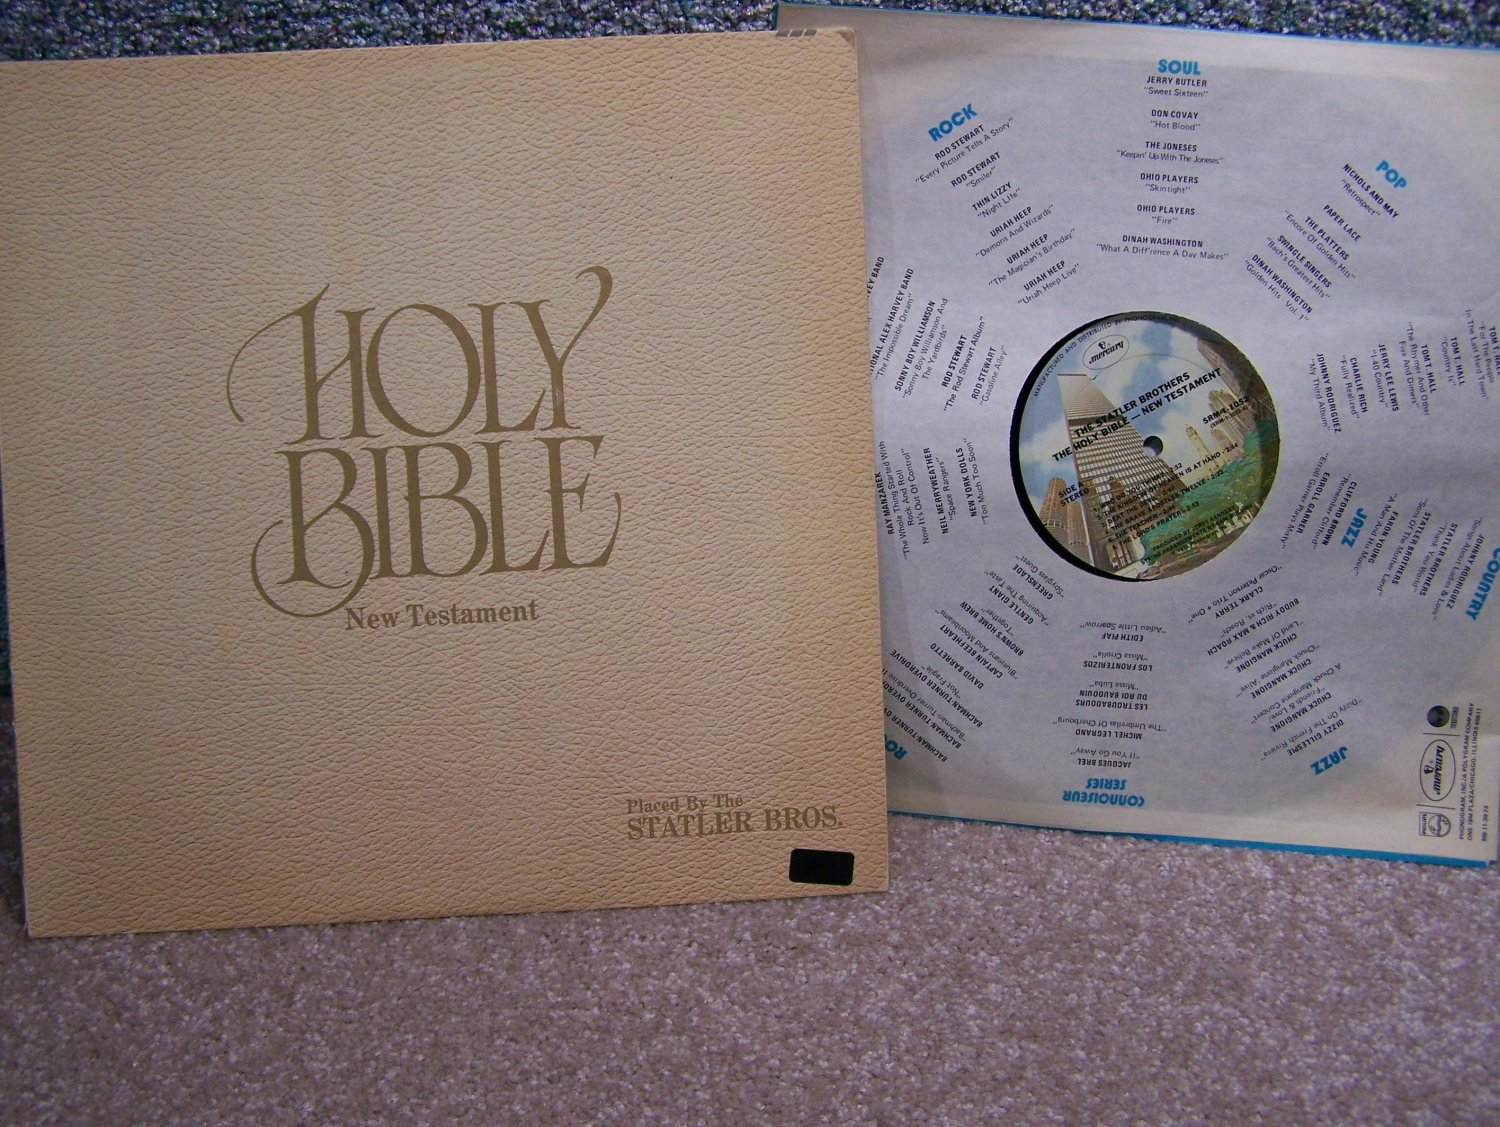 The Statler Brothers - Holy Bible New Testament